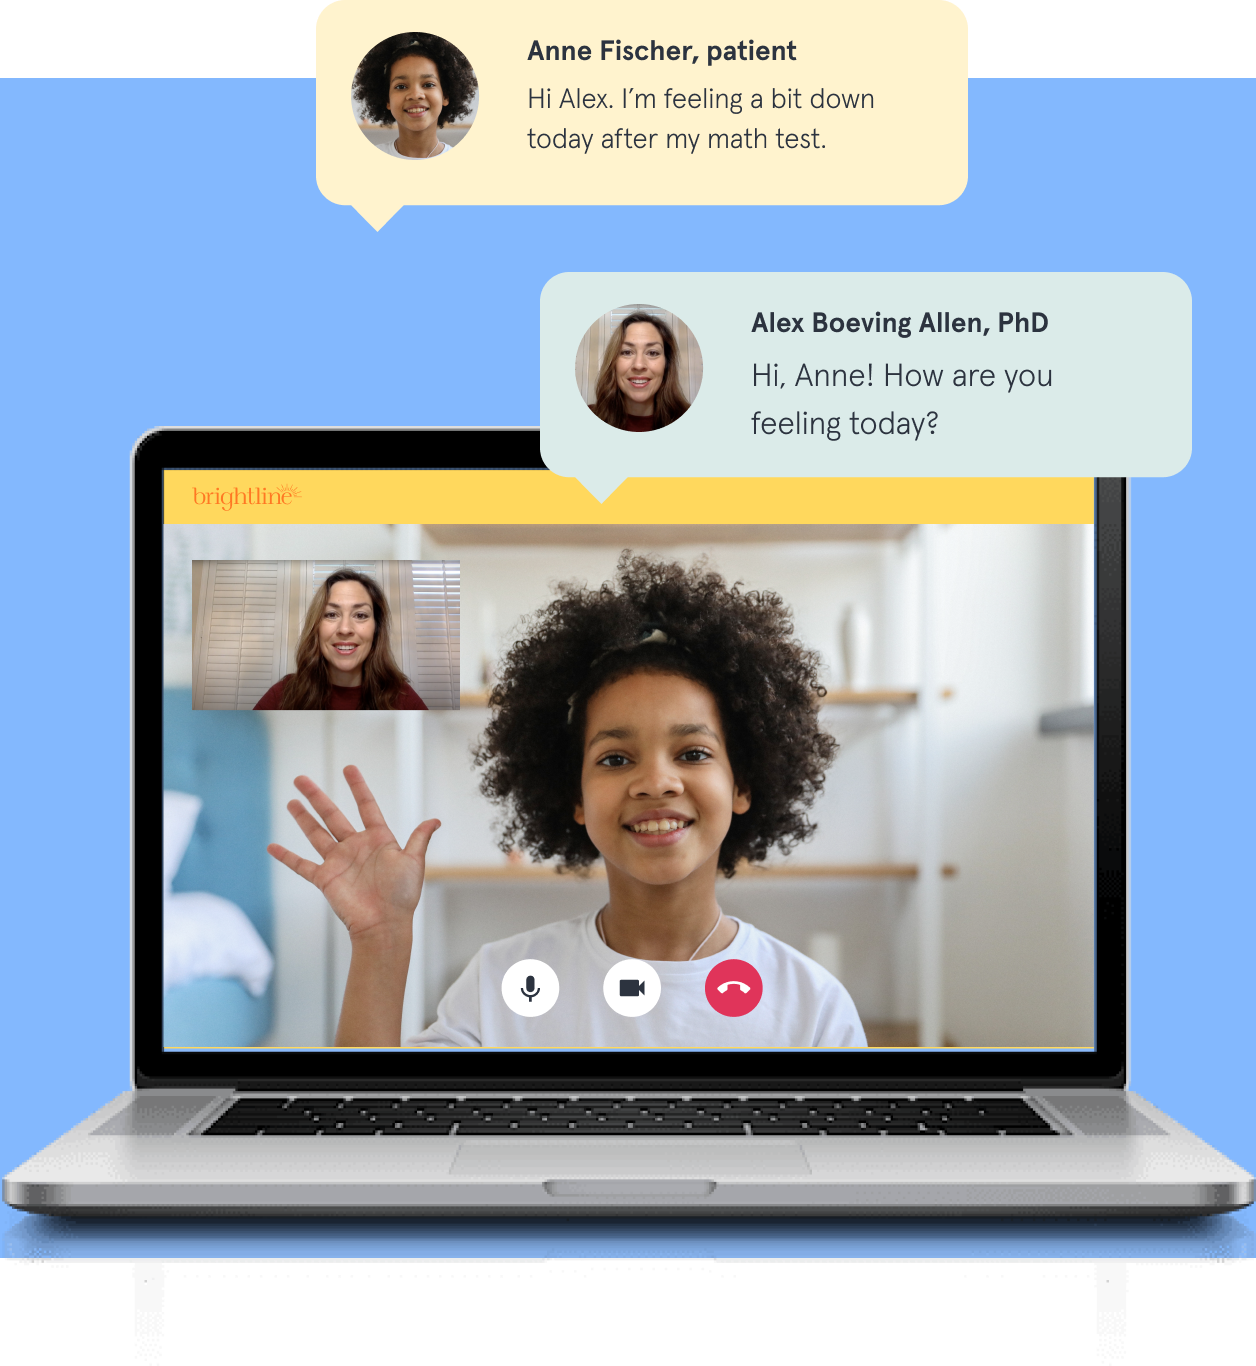 Video chat with text bubbles